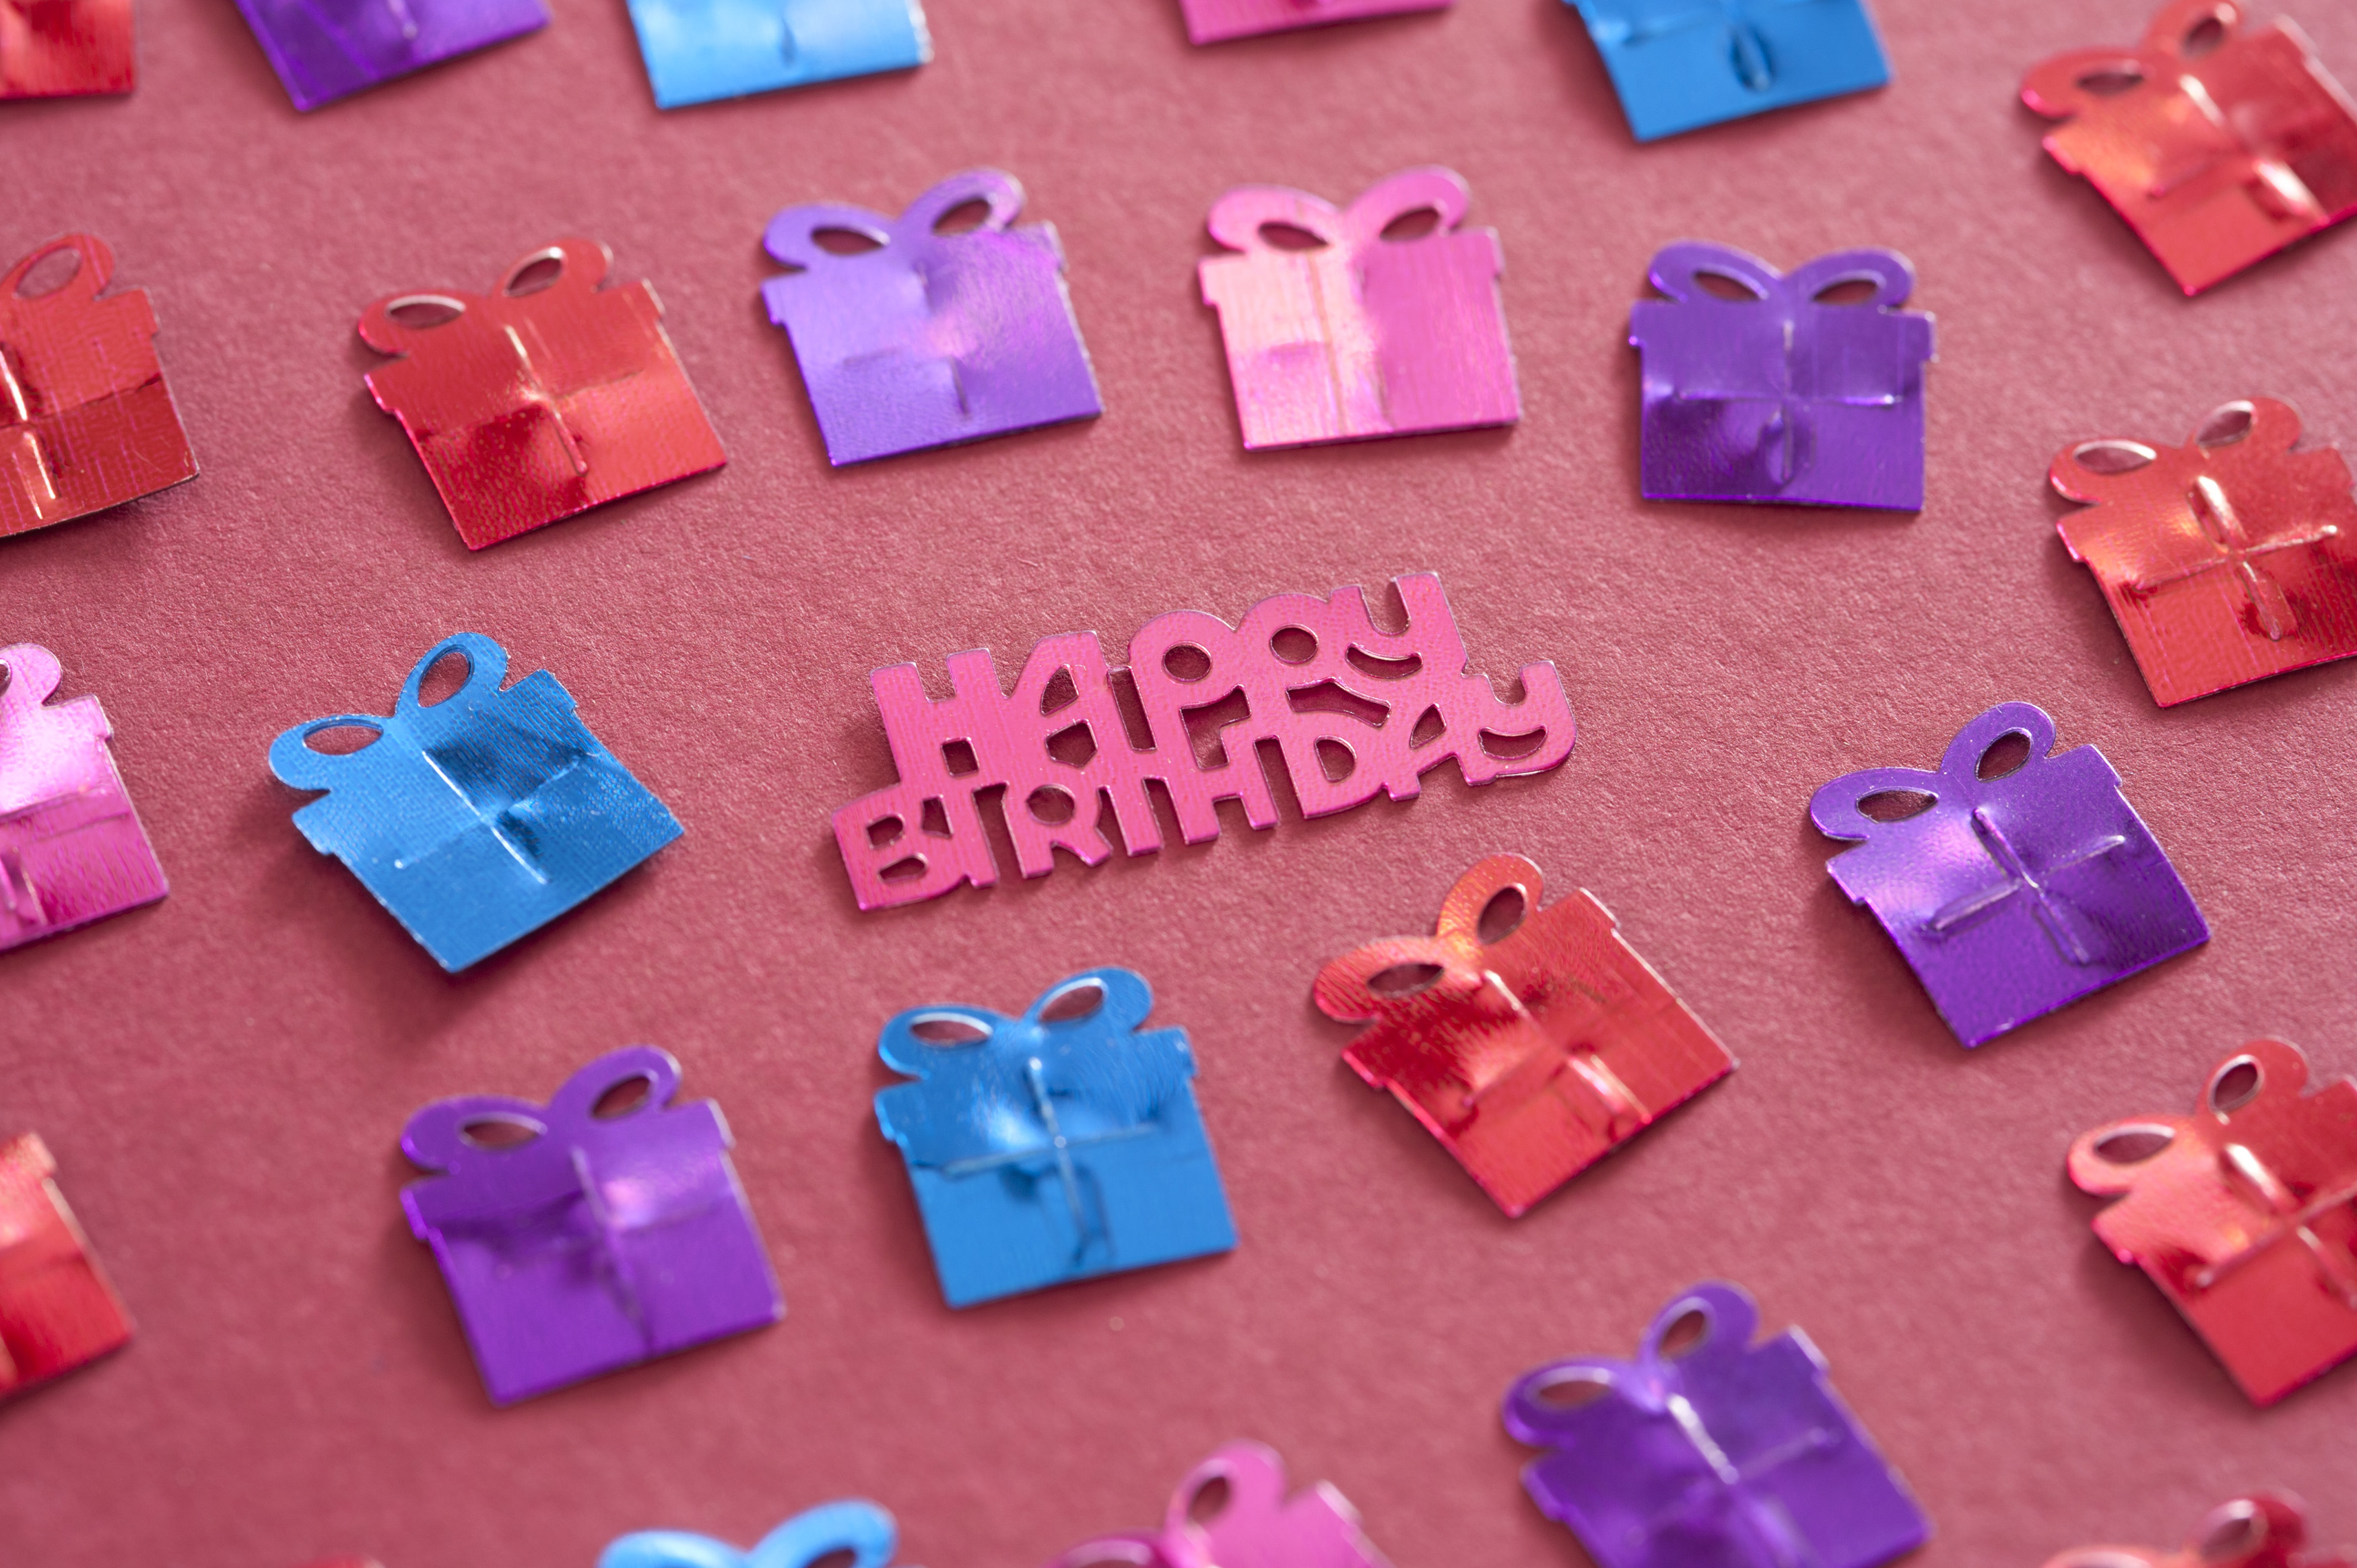 Happy Birthday Festive Background With Small Gift Decorations And Pink Text For A Girl On